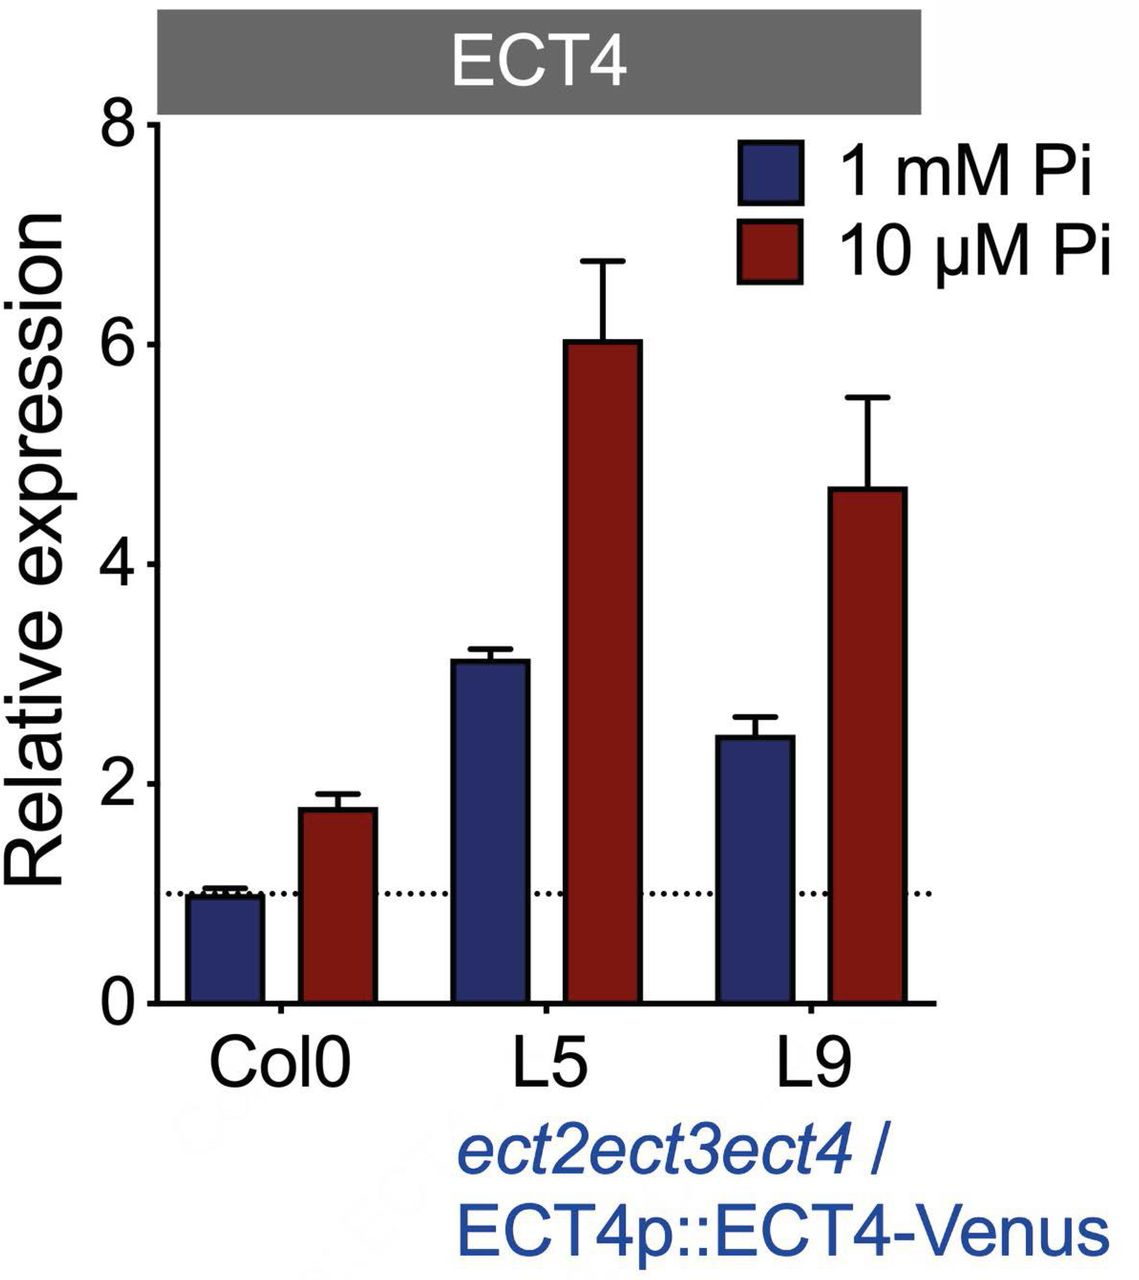 ECT4 expression in phosphate deprivation. ECT4 expression profile of Pi-deprived plants grown on MS plates. ect2ect3ect4 / ECT4p::ECT4-Venus , triple mutant complemented with ECT4-Venus (native 3'UTR present) under control of ECT4 native promoter. RT-qPCR using oligo pair specific to ECT4 , endogenous and transgene (n = 3 bio. rep.).